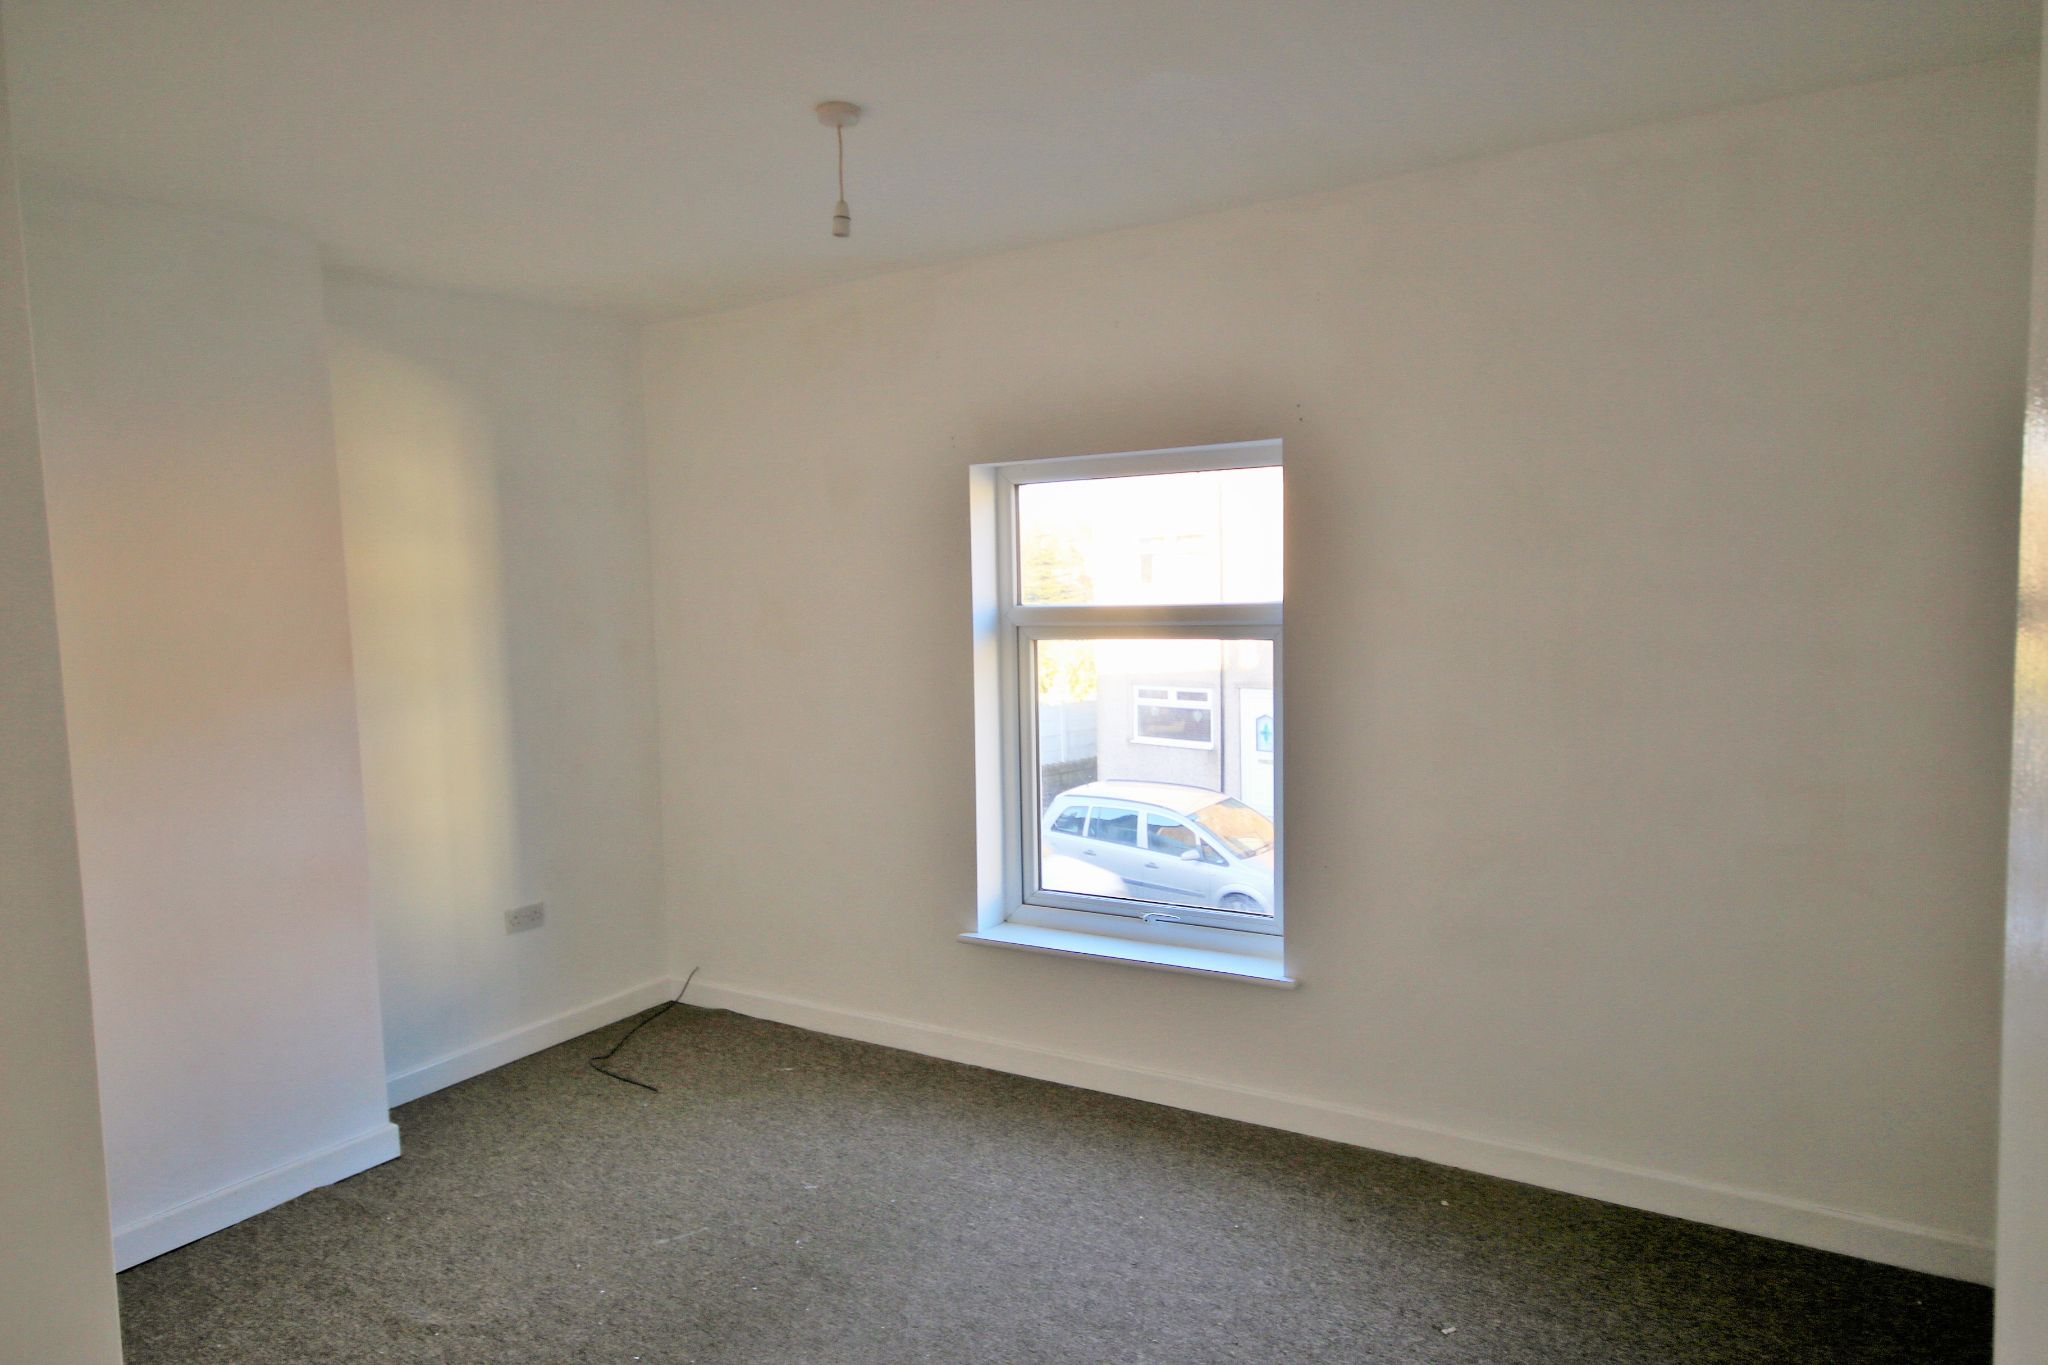 1 Bedroom End Terraced House To Rent - Photograph 4